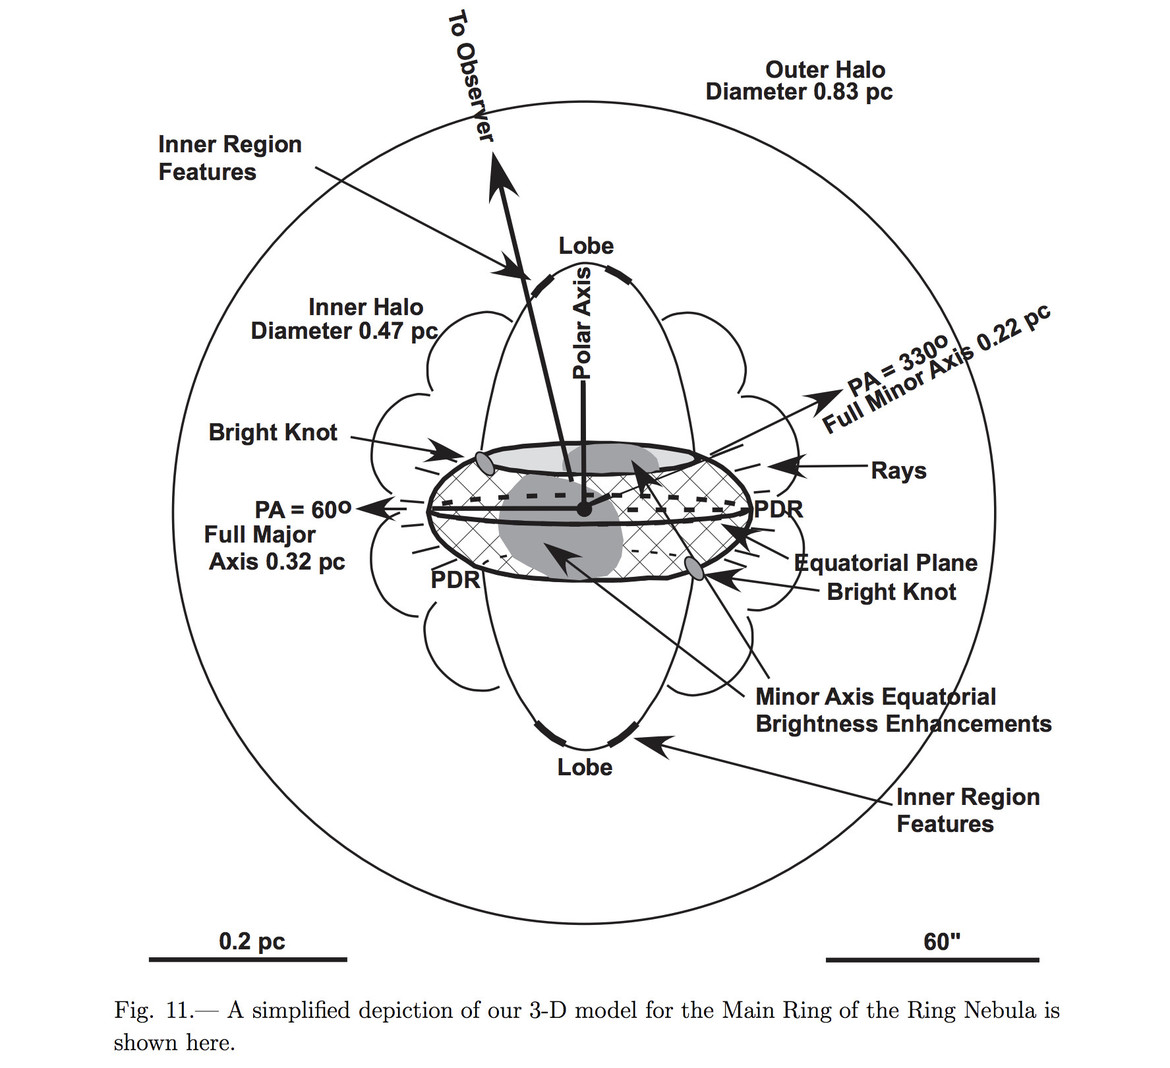 This is a schematic showing one of the models of how the Ring Nebula must really be shaped. What we think of as the ring itself is just a short, barrel-shaped structure in the middle of a larger cloud, and we're looking down the barrel. The caption made m